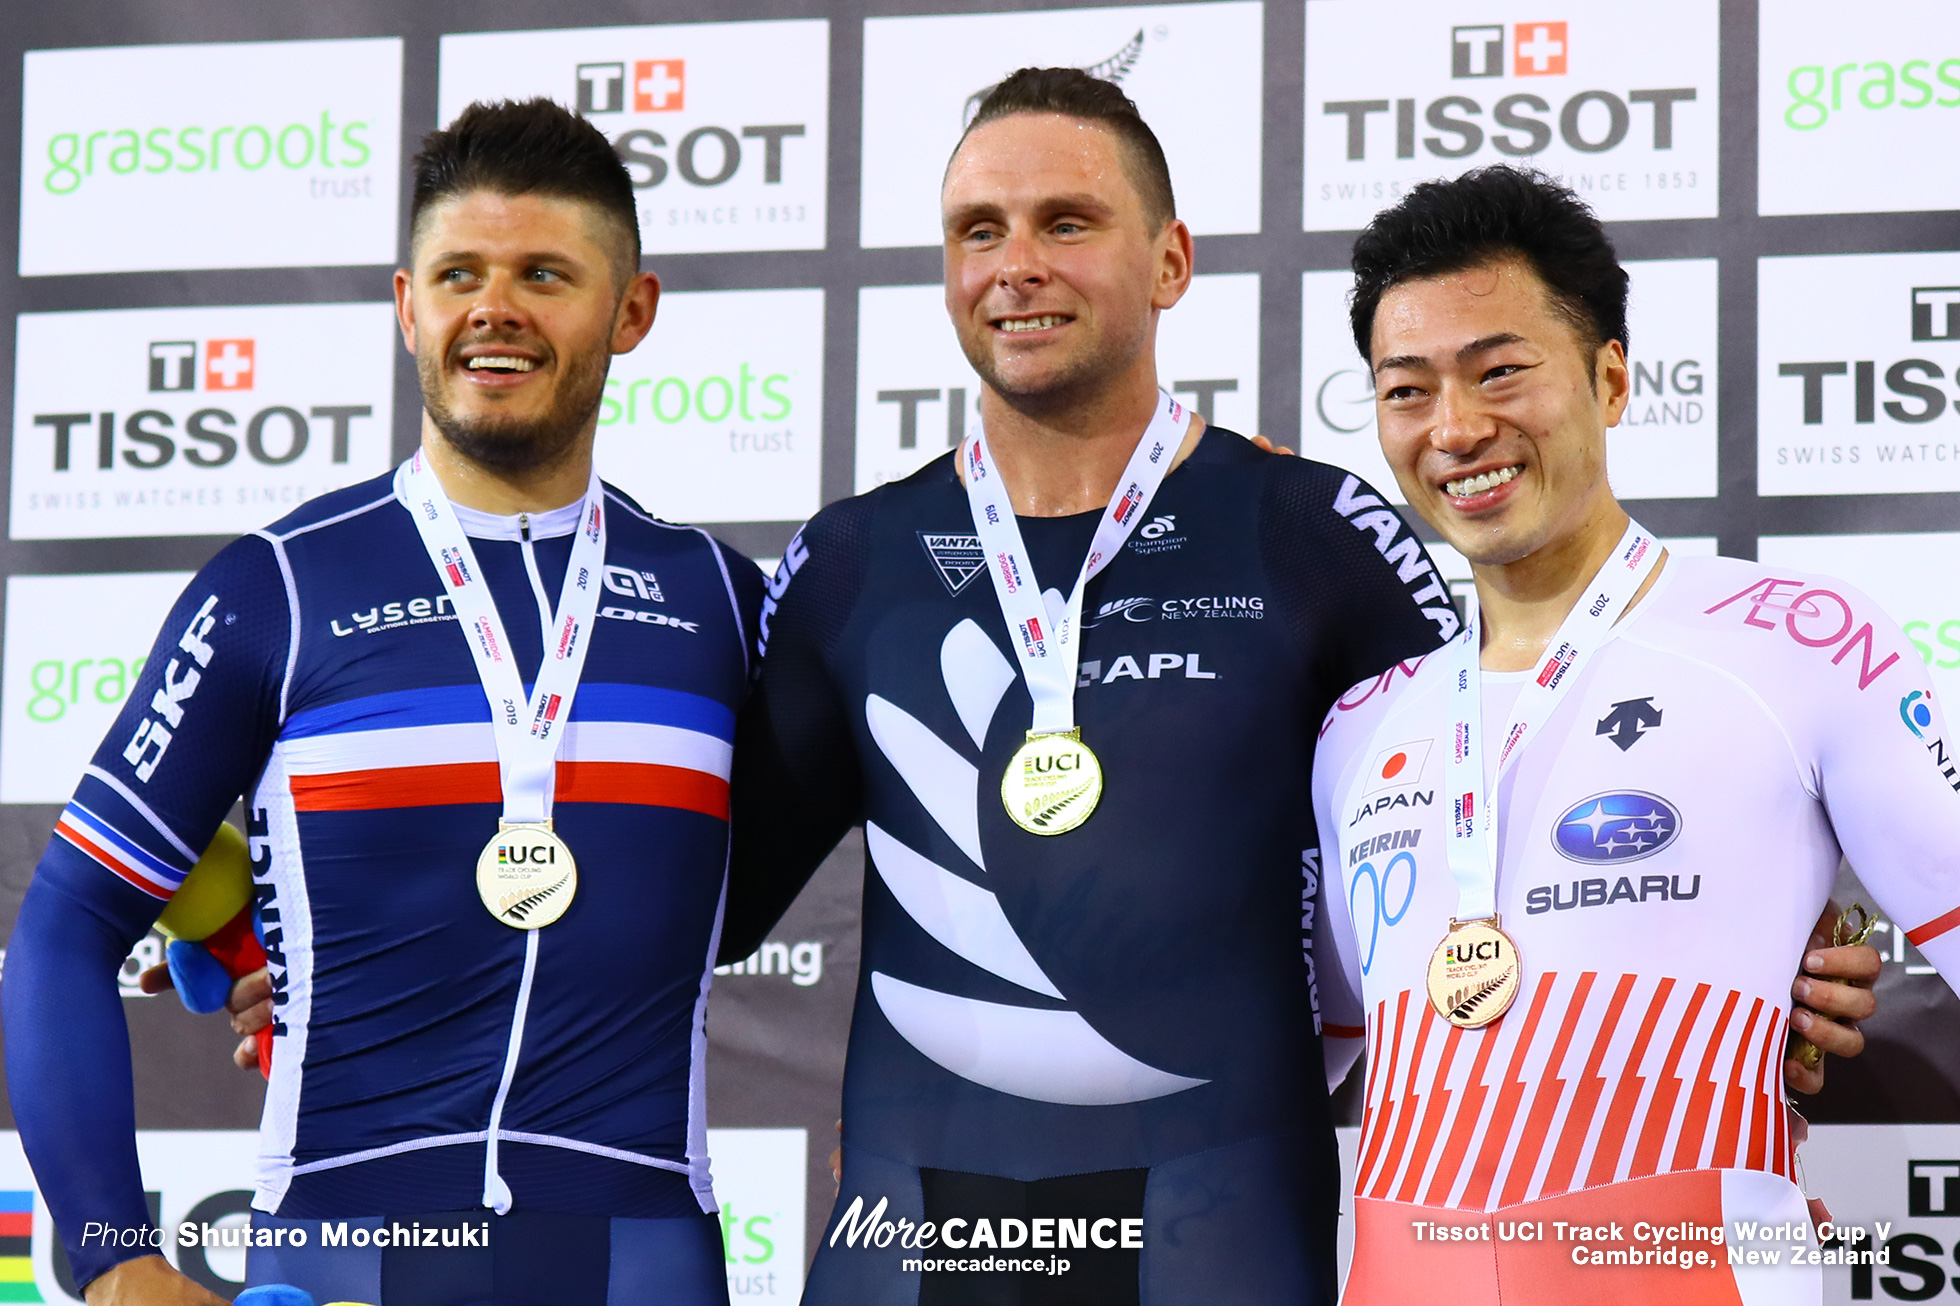 Men's Keirin / Track Cycling World Cup V / Cambridge, New Zealand